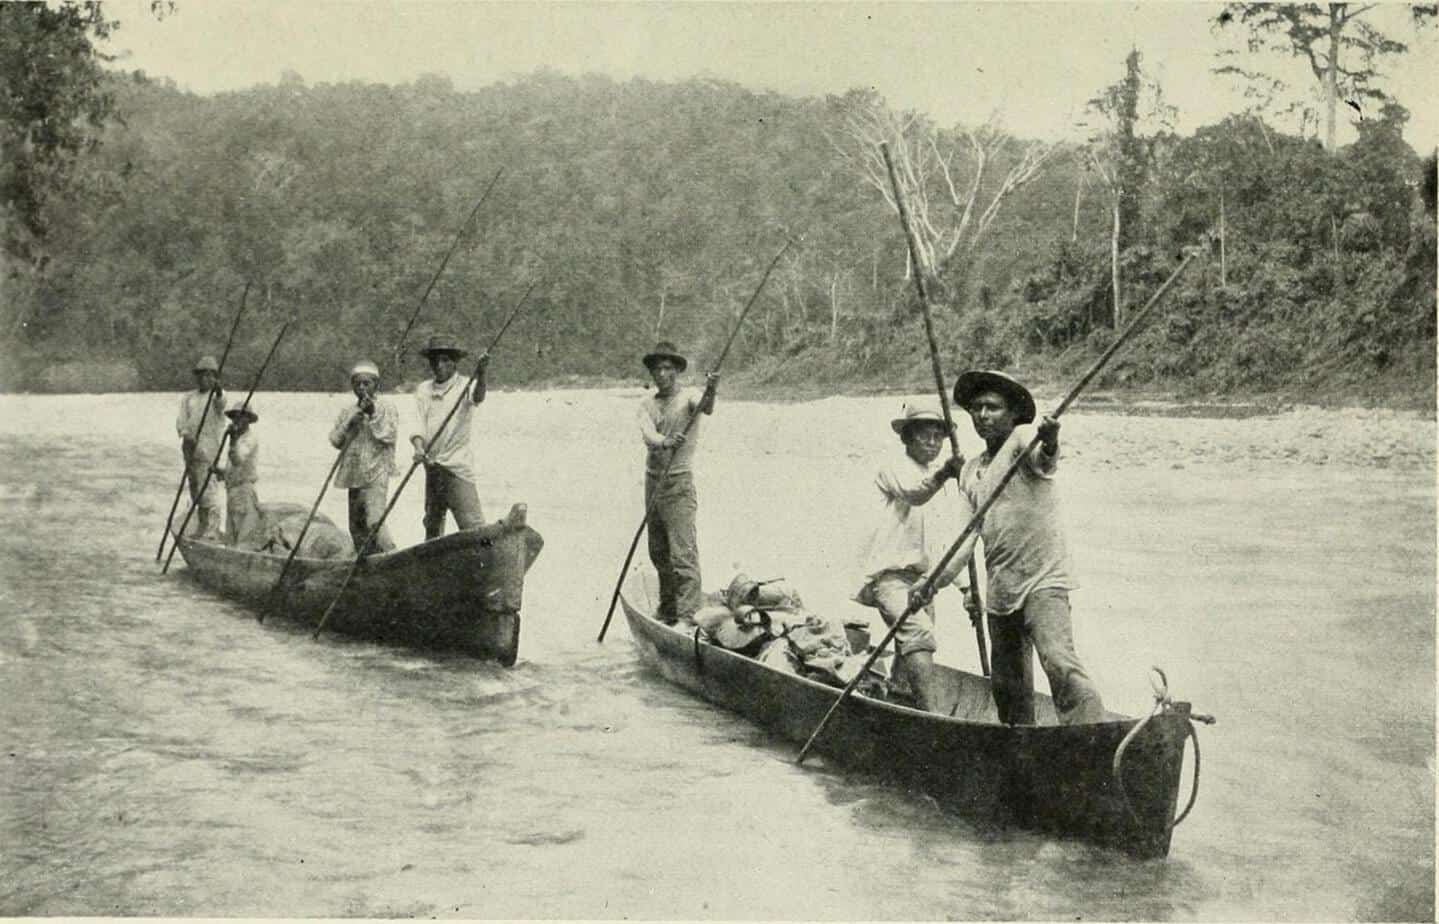 Early 1900s Costa Rica